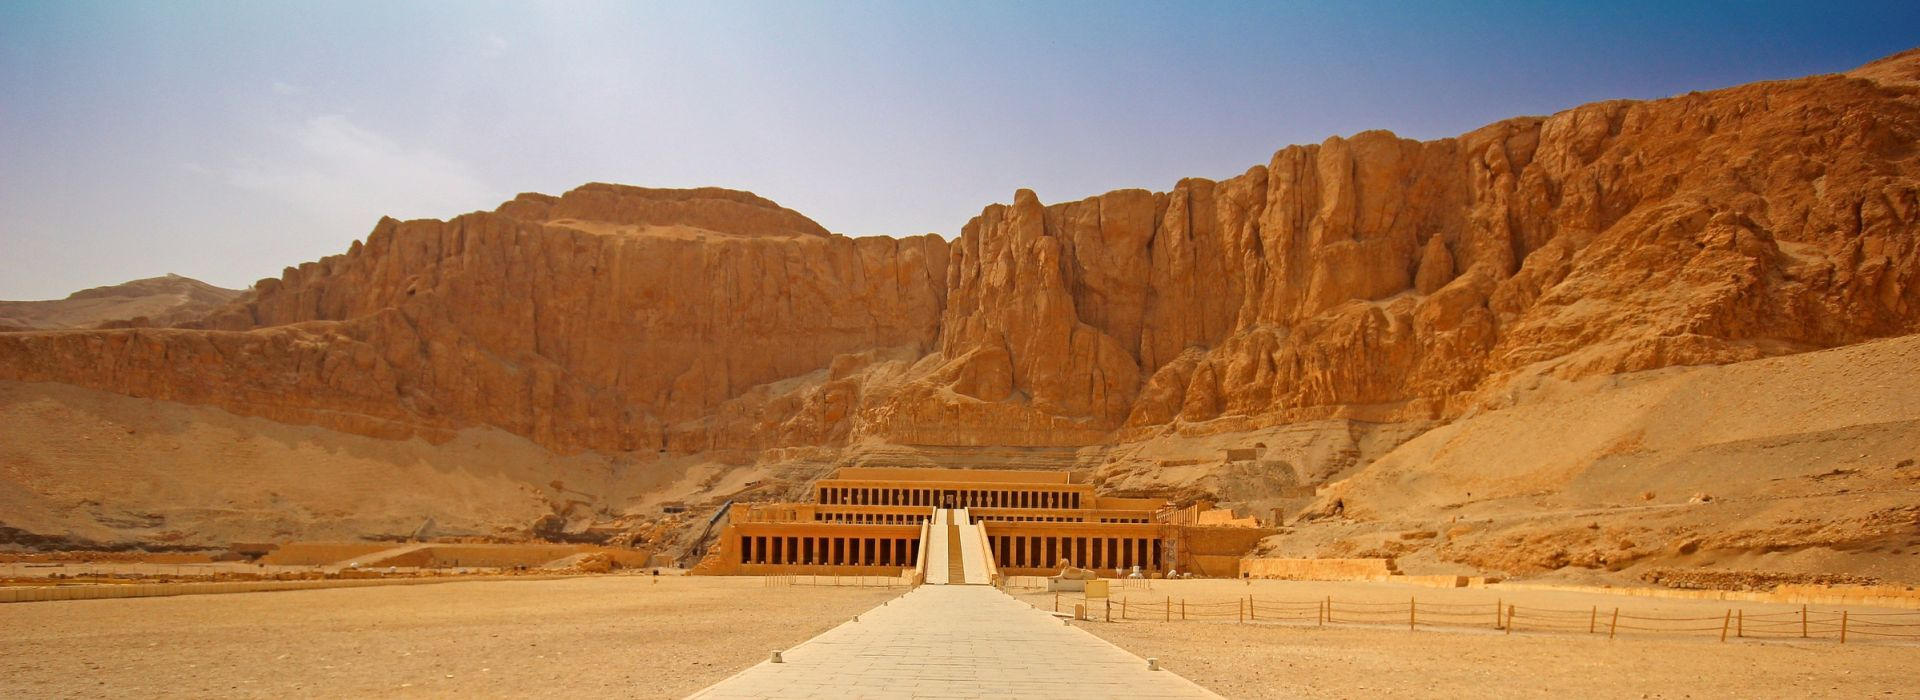 Cultural, religious and historic sites Tours in Cairo